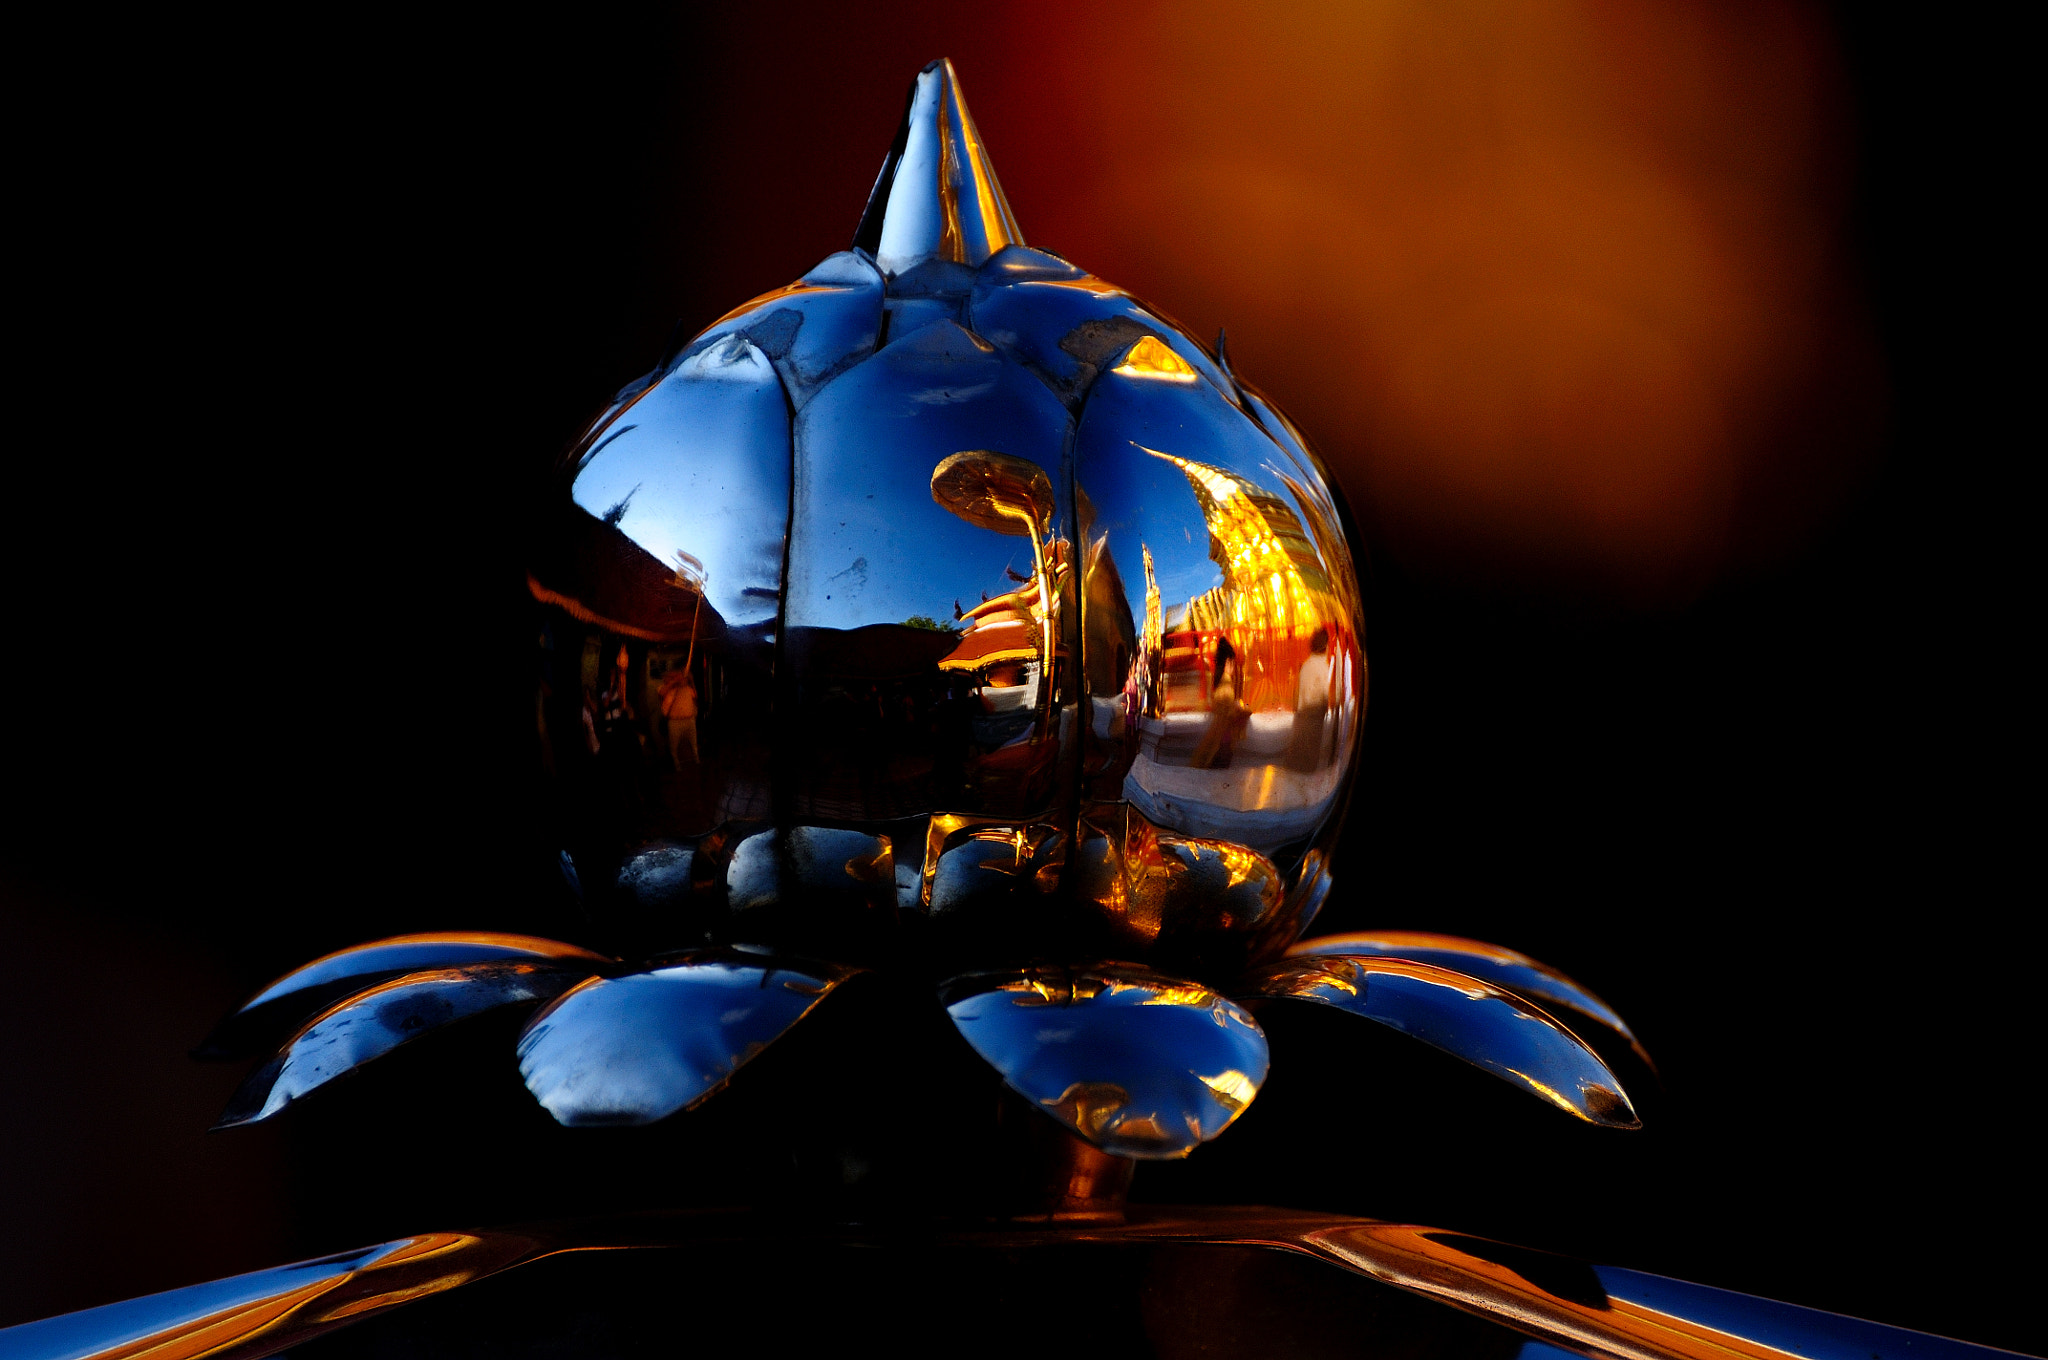 Photograph Metallic Reflection by Photos of Thailand .... on 500px